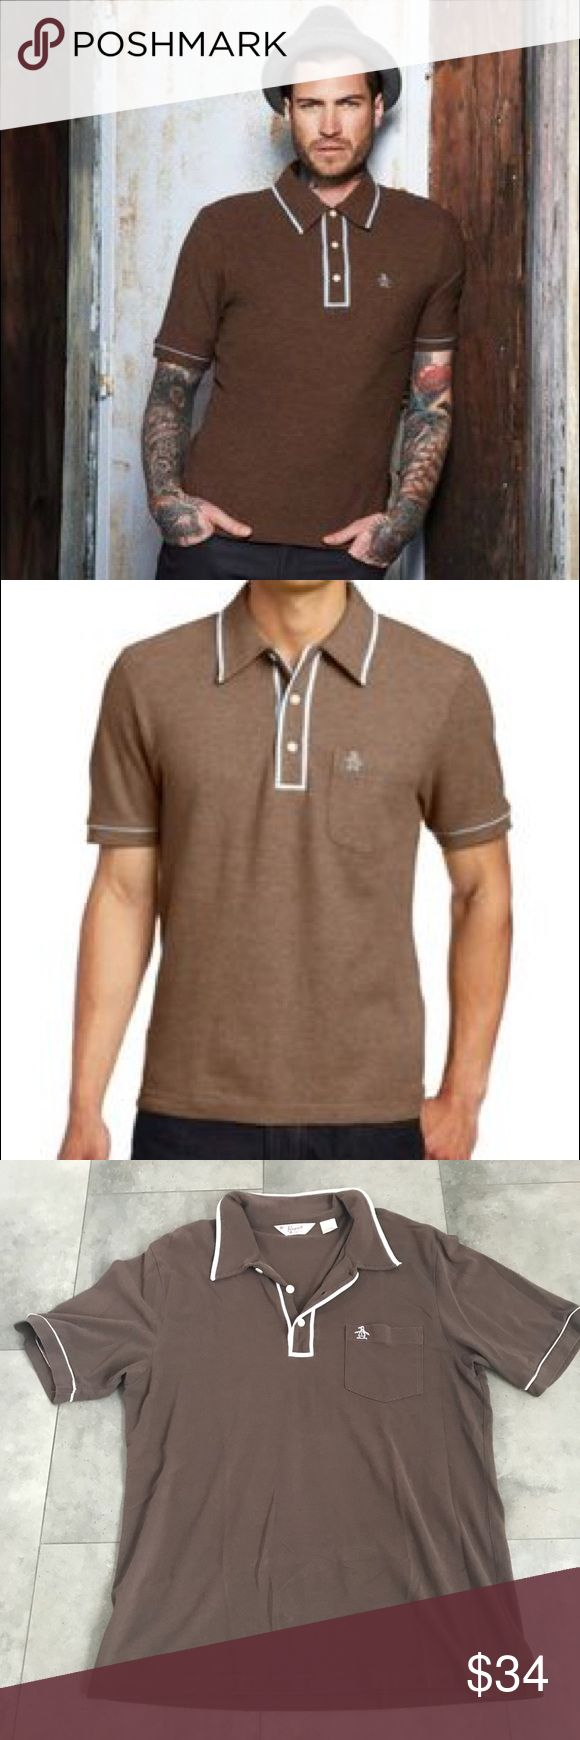 {original penguin} men's brown polo shirt! Original men's penguin brand brown polo shirt! Excellent condition! Size XXL. Retails for $69. Pit to pit is 22 in. Length is 32 in. Bundle and save! Original Penguin Shirts Polos